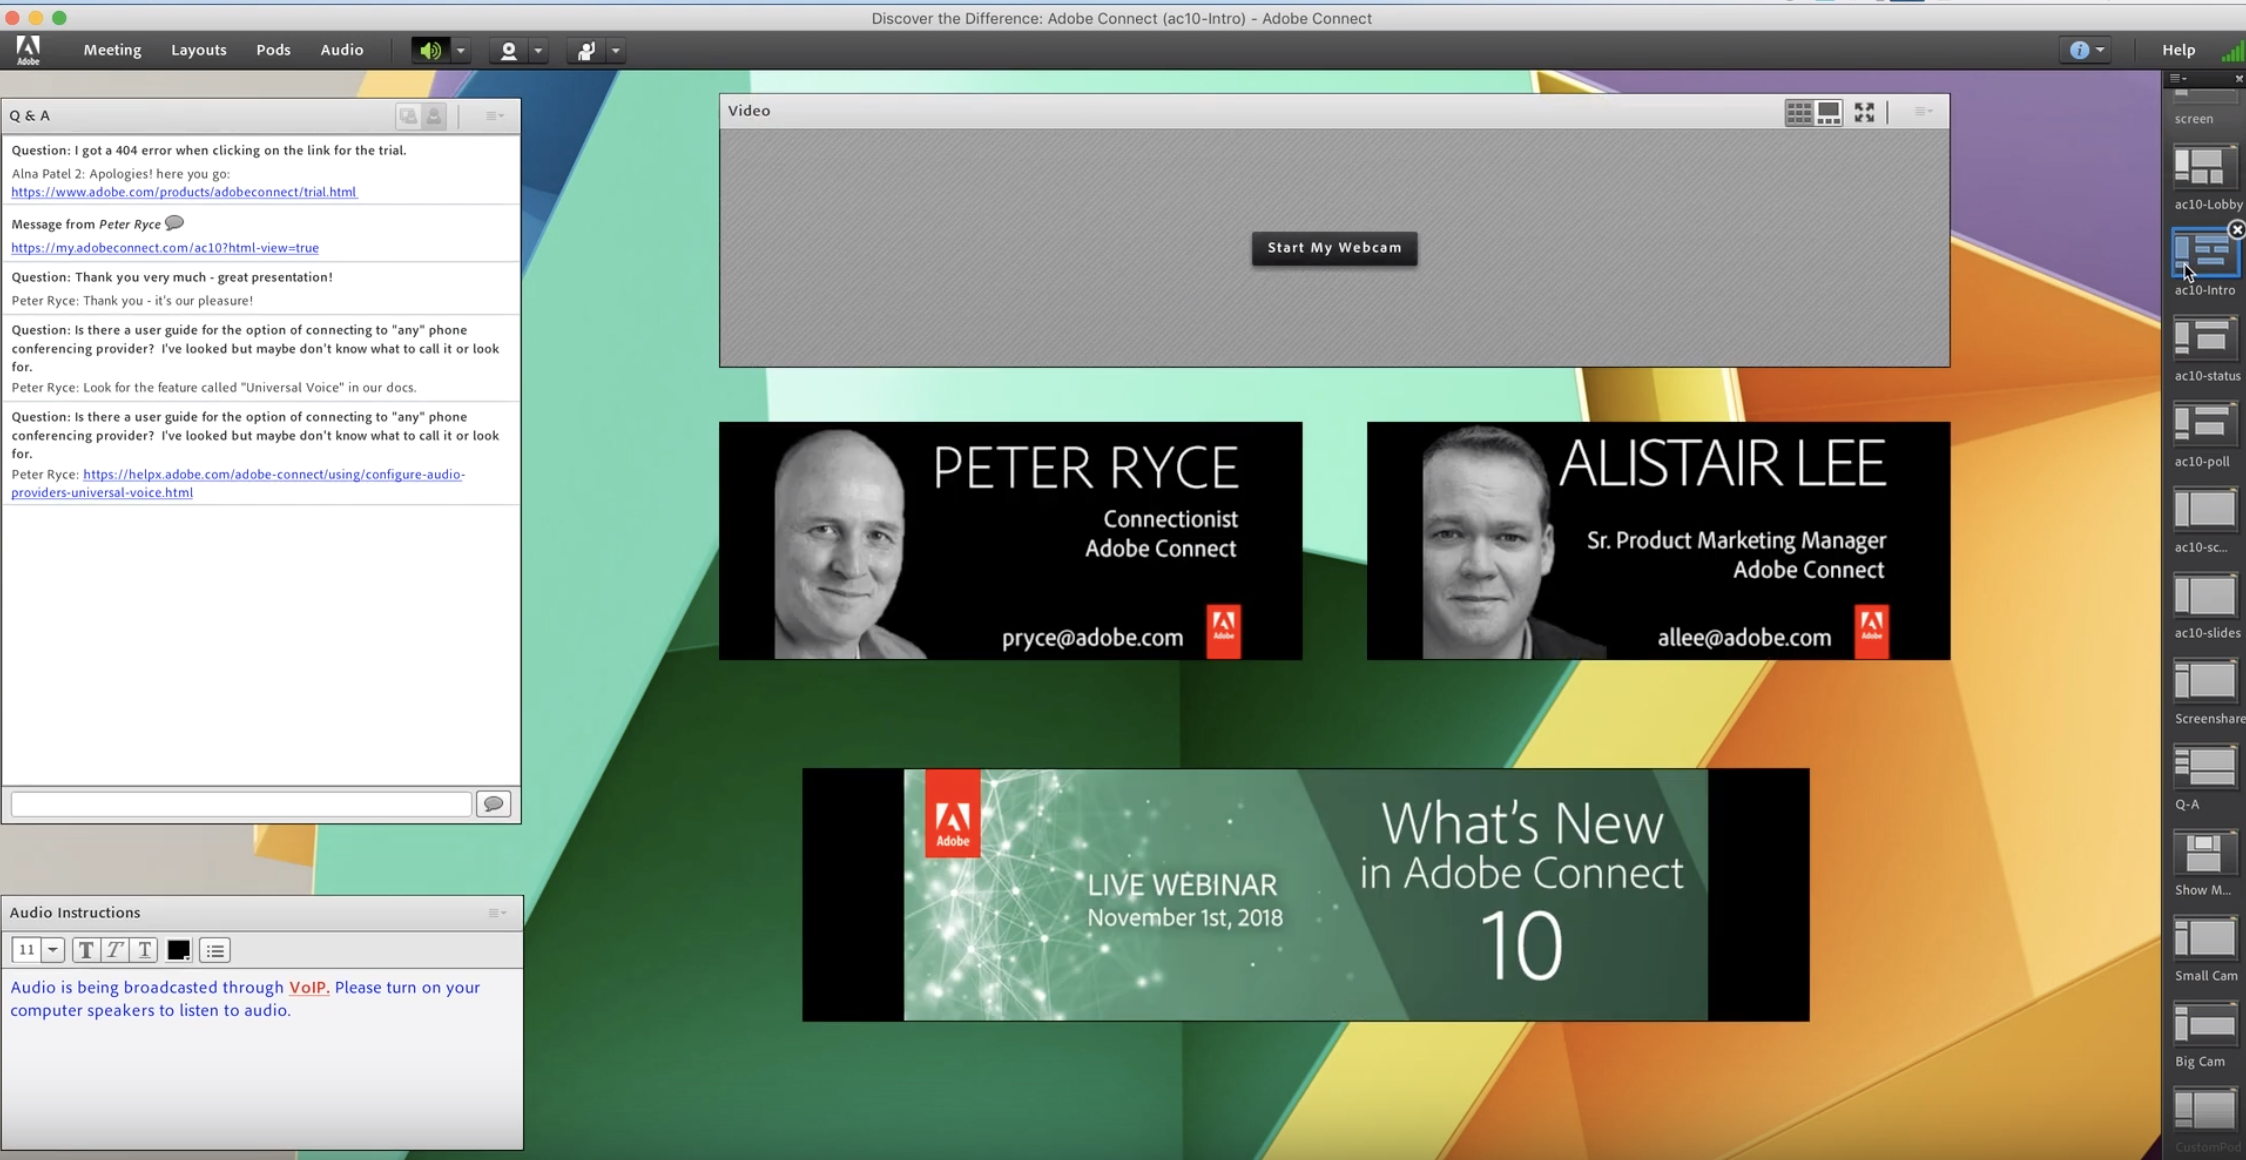 Adobe Connect Demo - Screenshot-2019-03-04-16.48.23.png